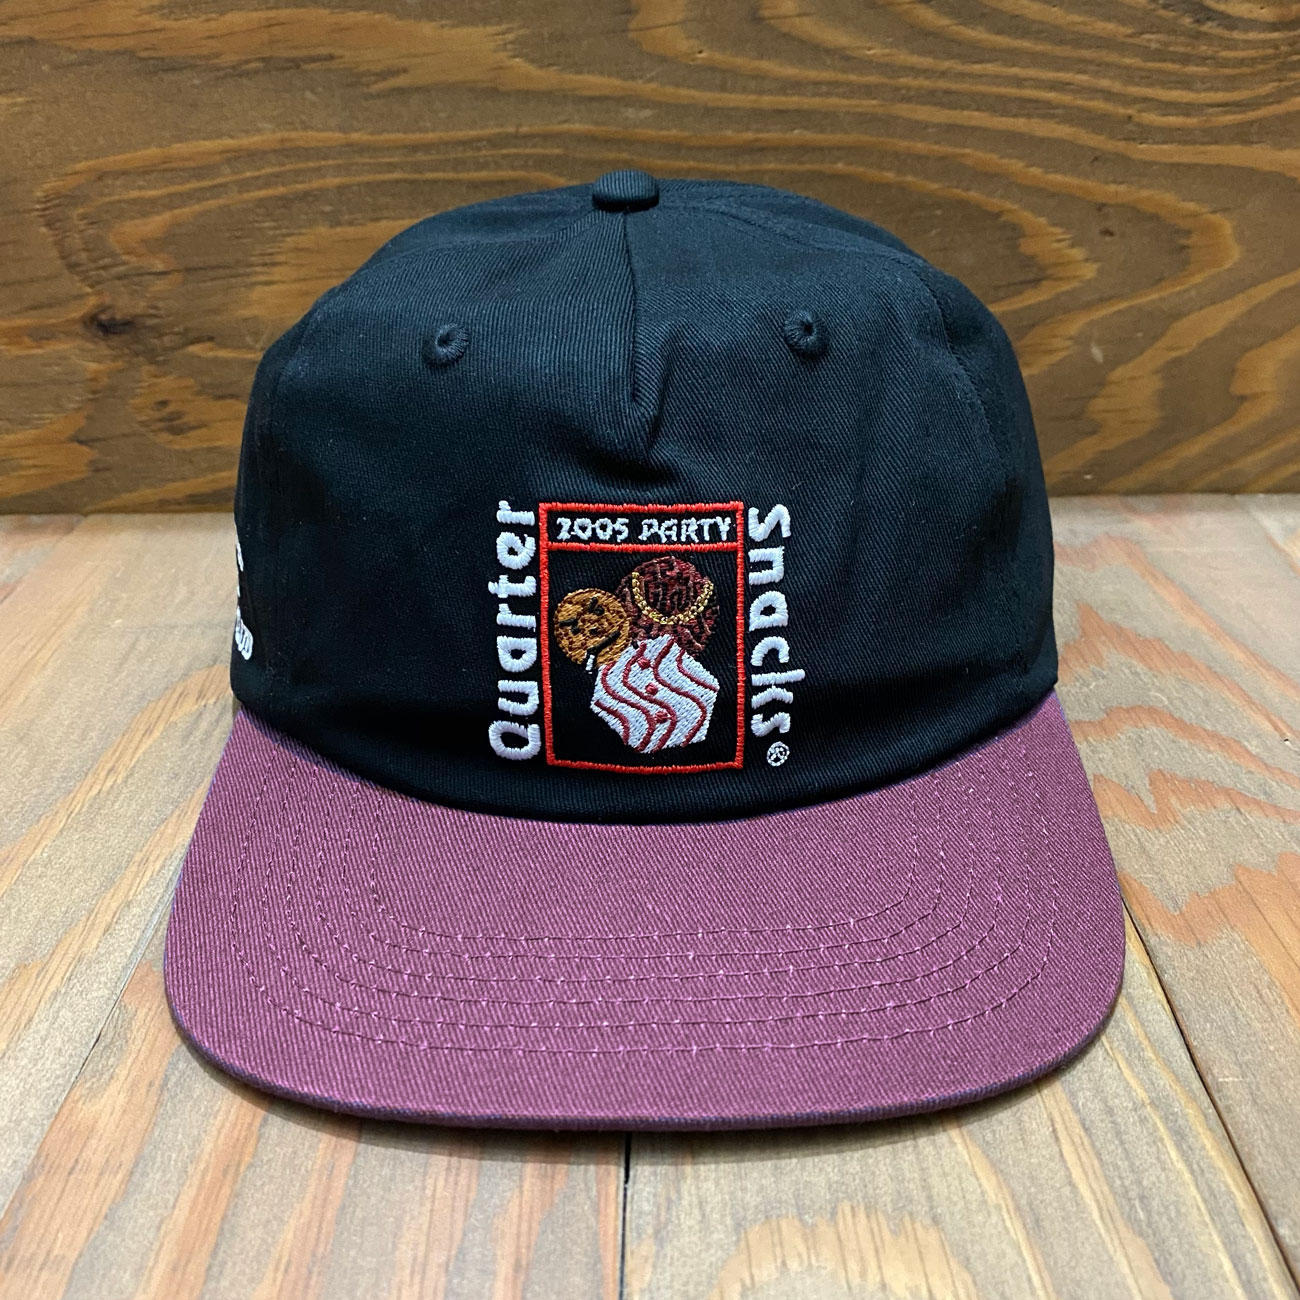 QUARTER SNACKS PARTY CAP BLACK/PURPLE